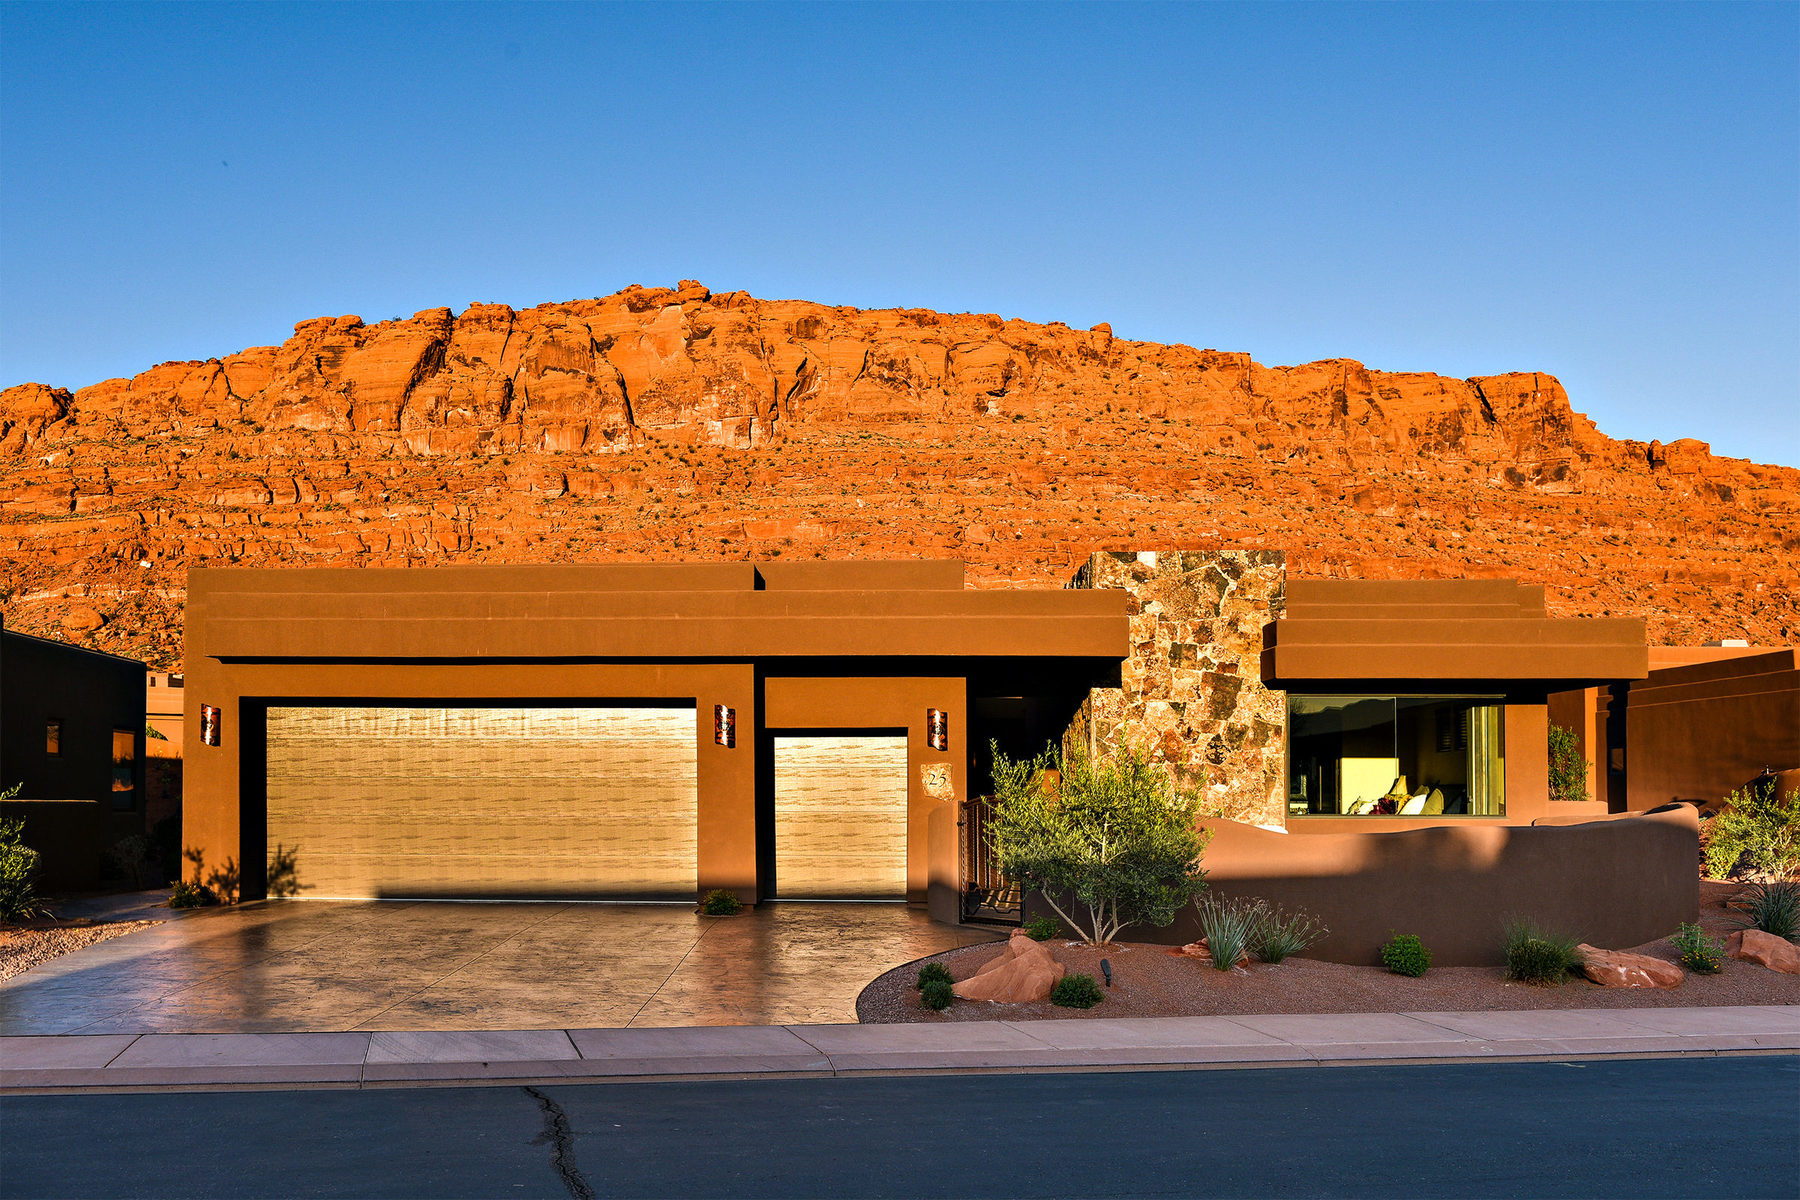 Single Family Home for Sale at Serene Luxury 2336 W Entrada Trl #25 St. George, Utah, 84770 United States